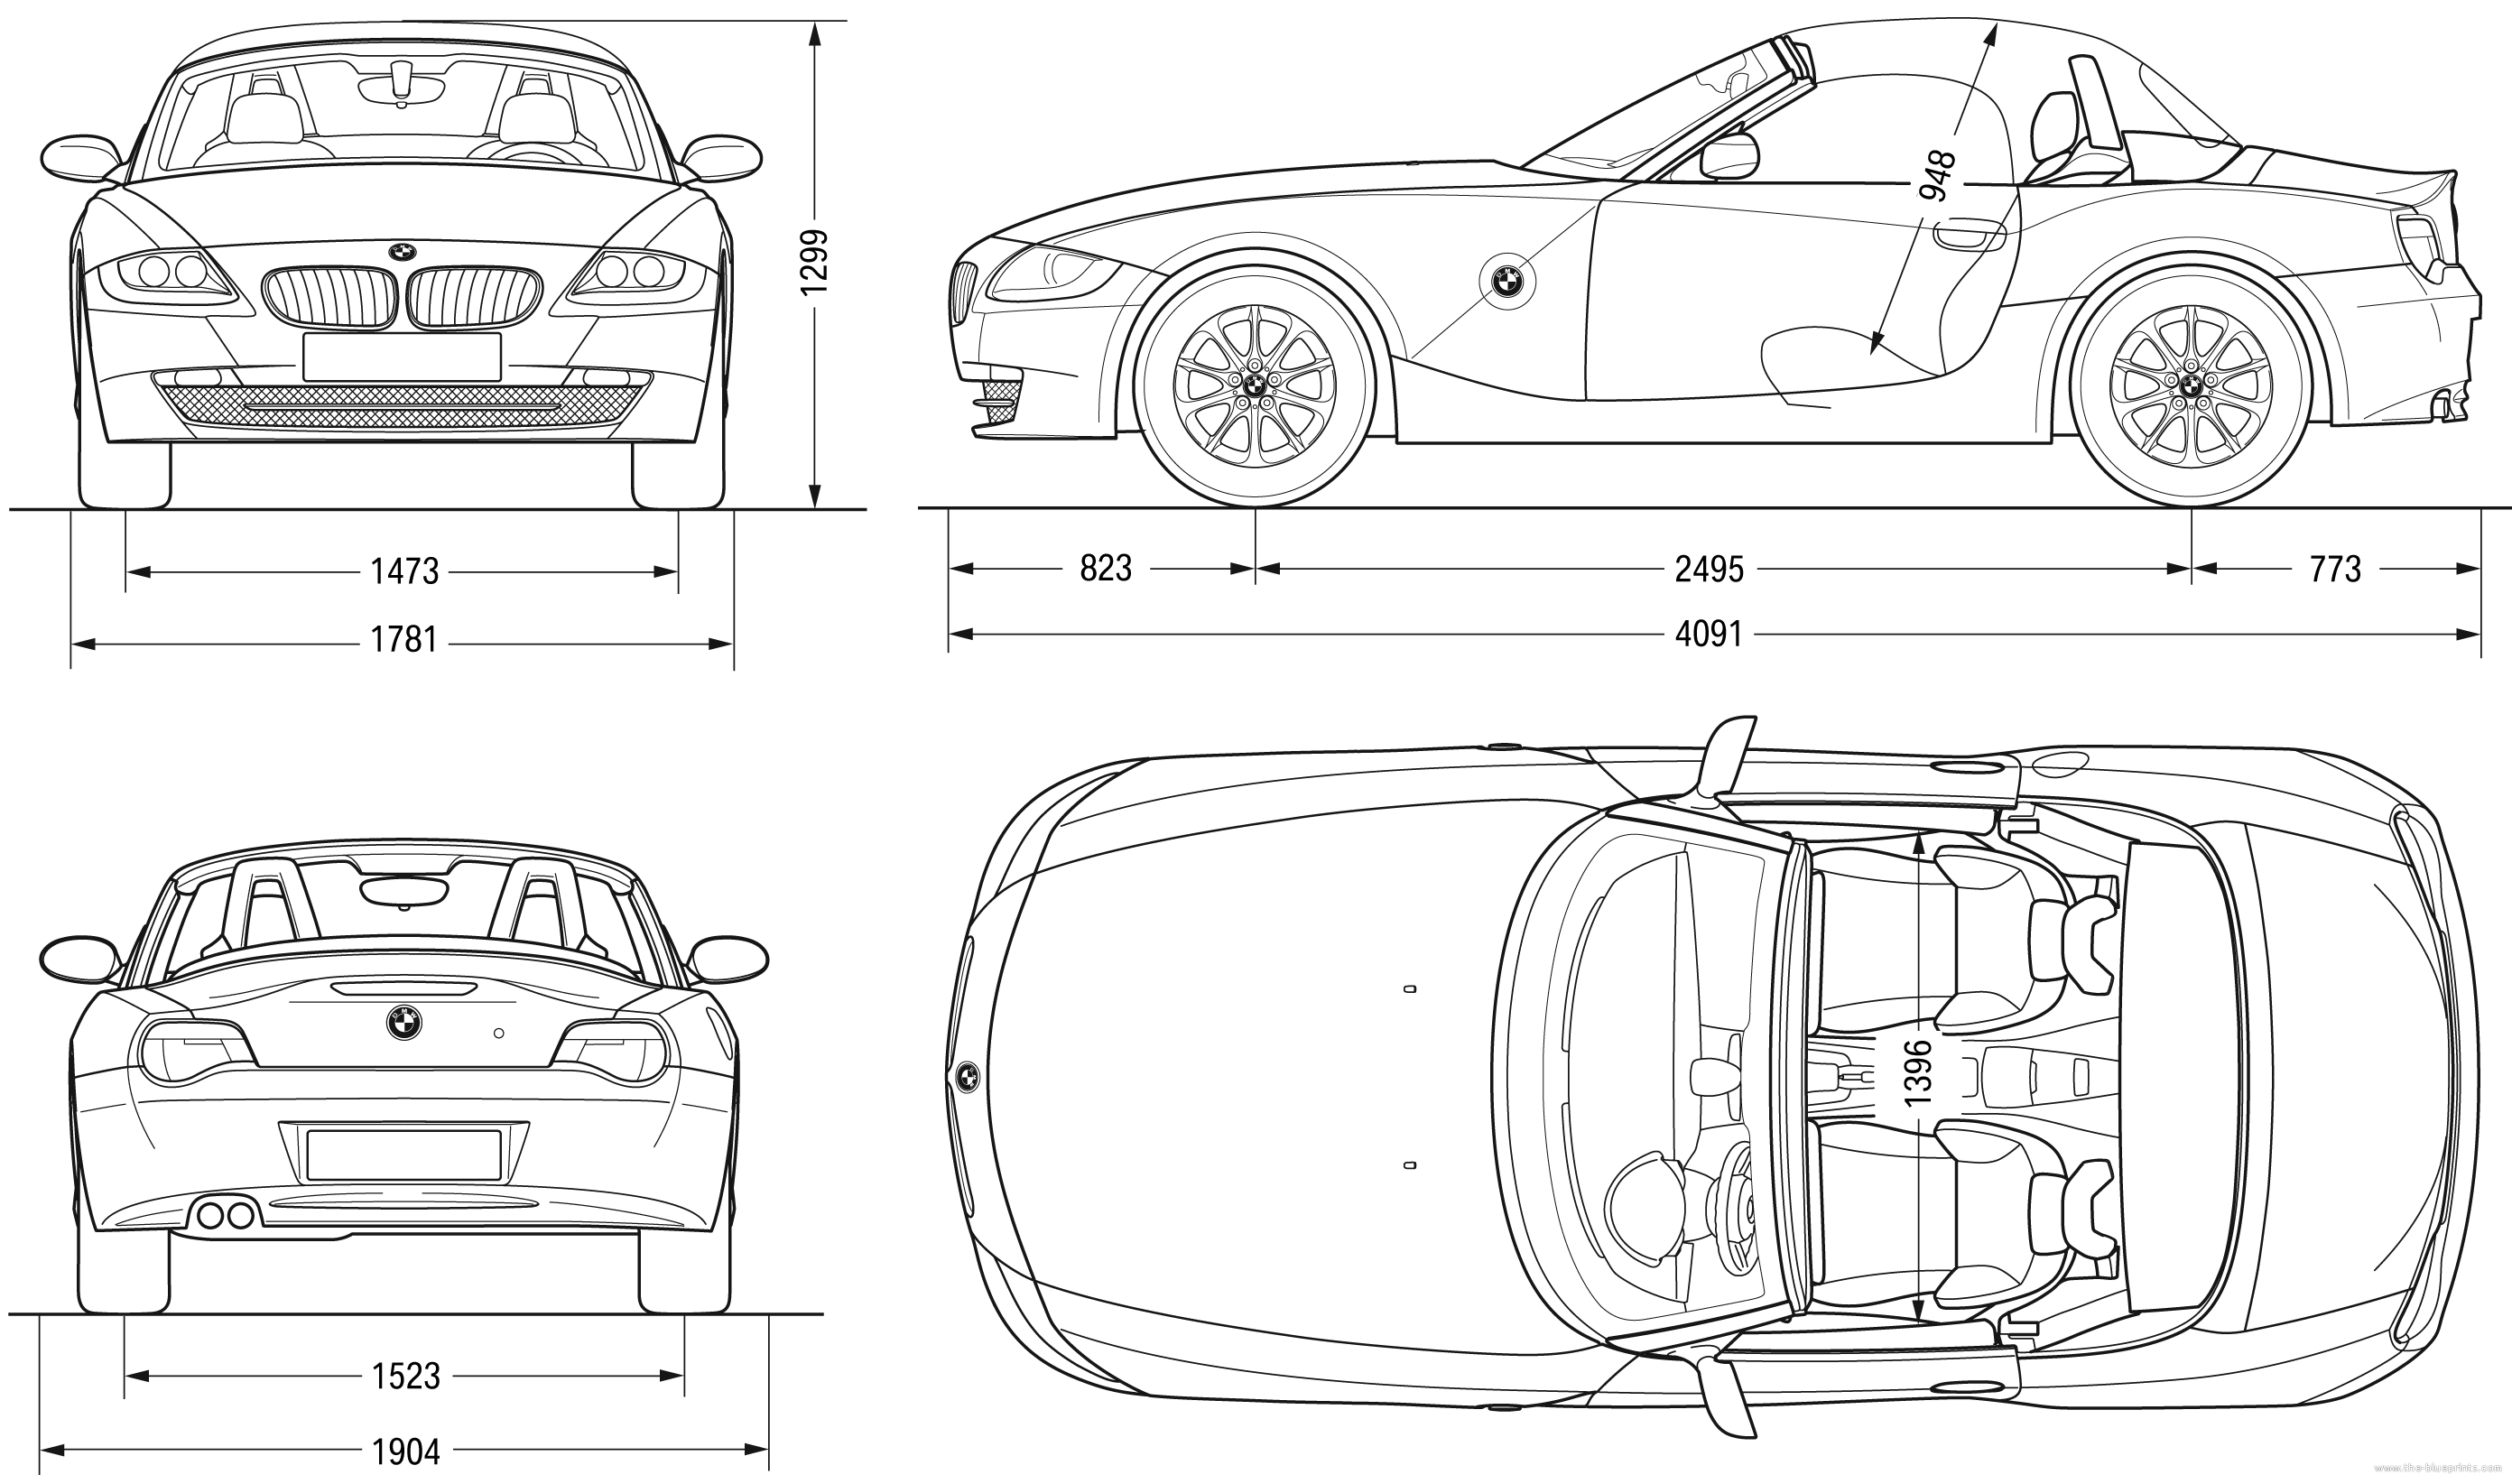 Bmw z4 blueprints pinterest bmw z4 bmw and cars bmw z4 malvernweather Image collections